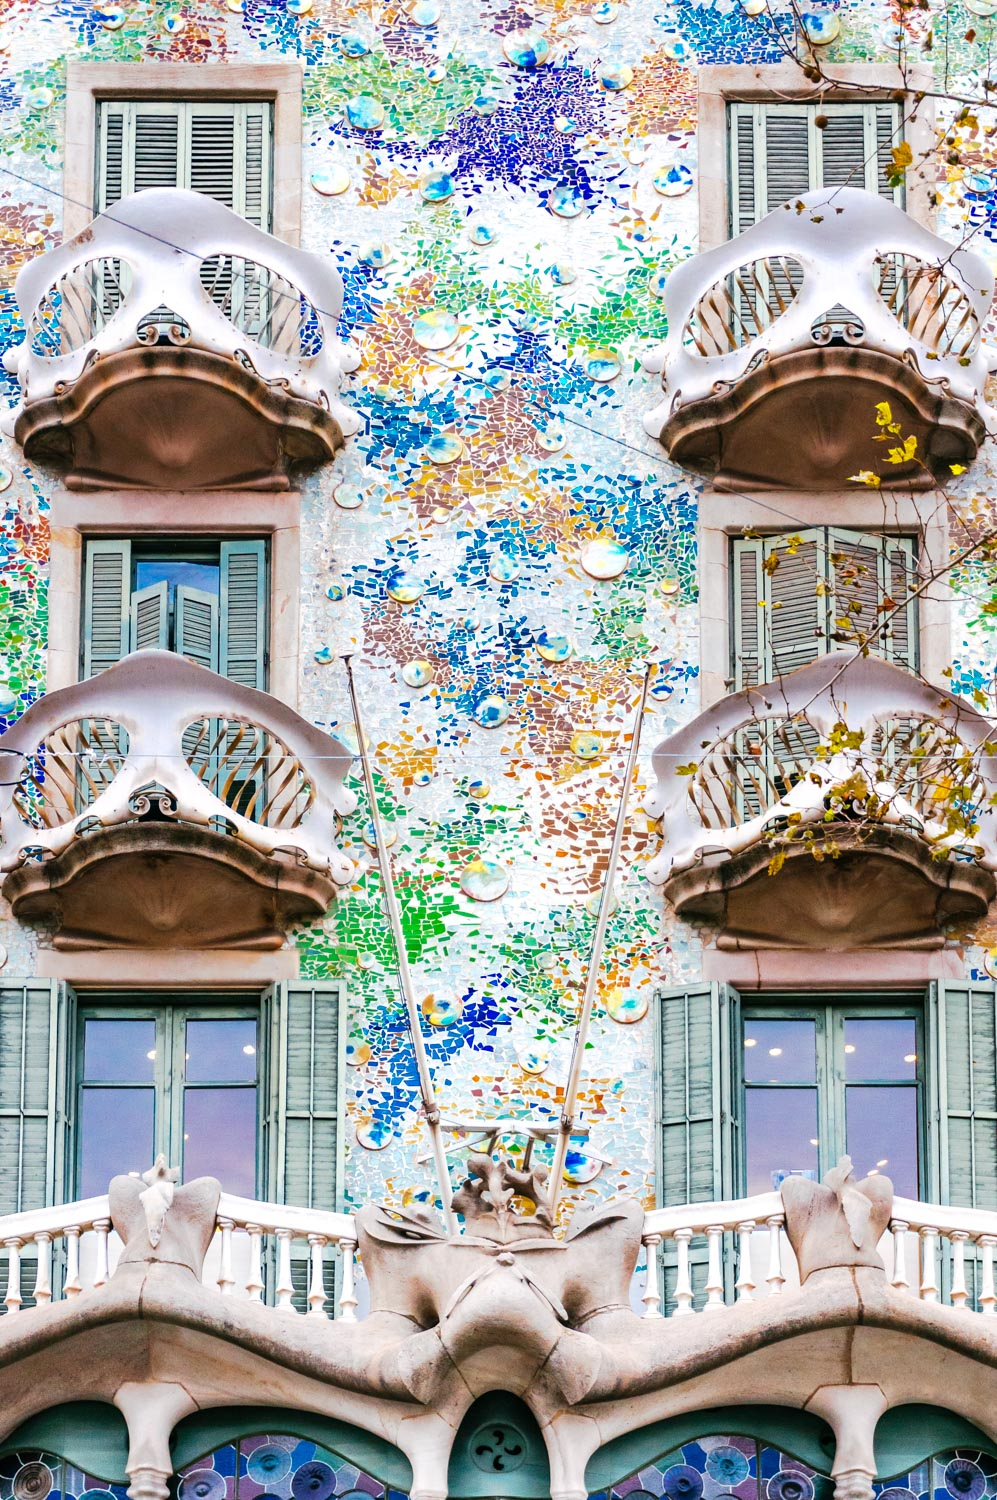 Barcelona day 1, part 3 – Gaudi and more architecture